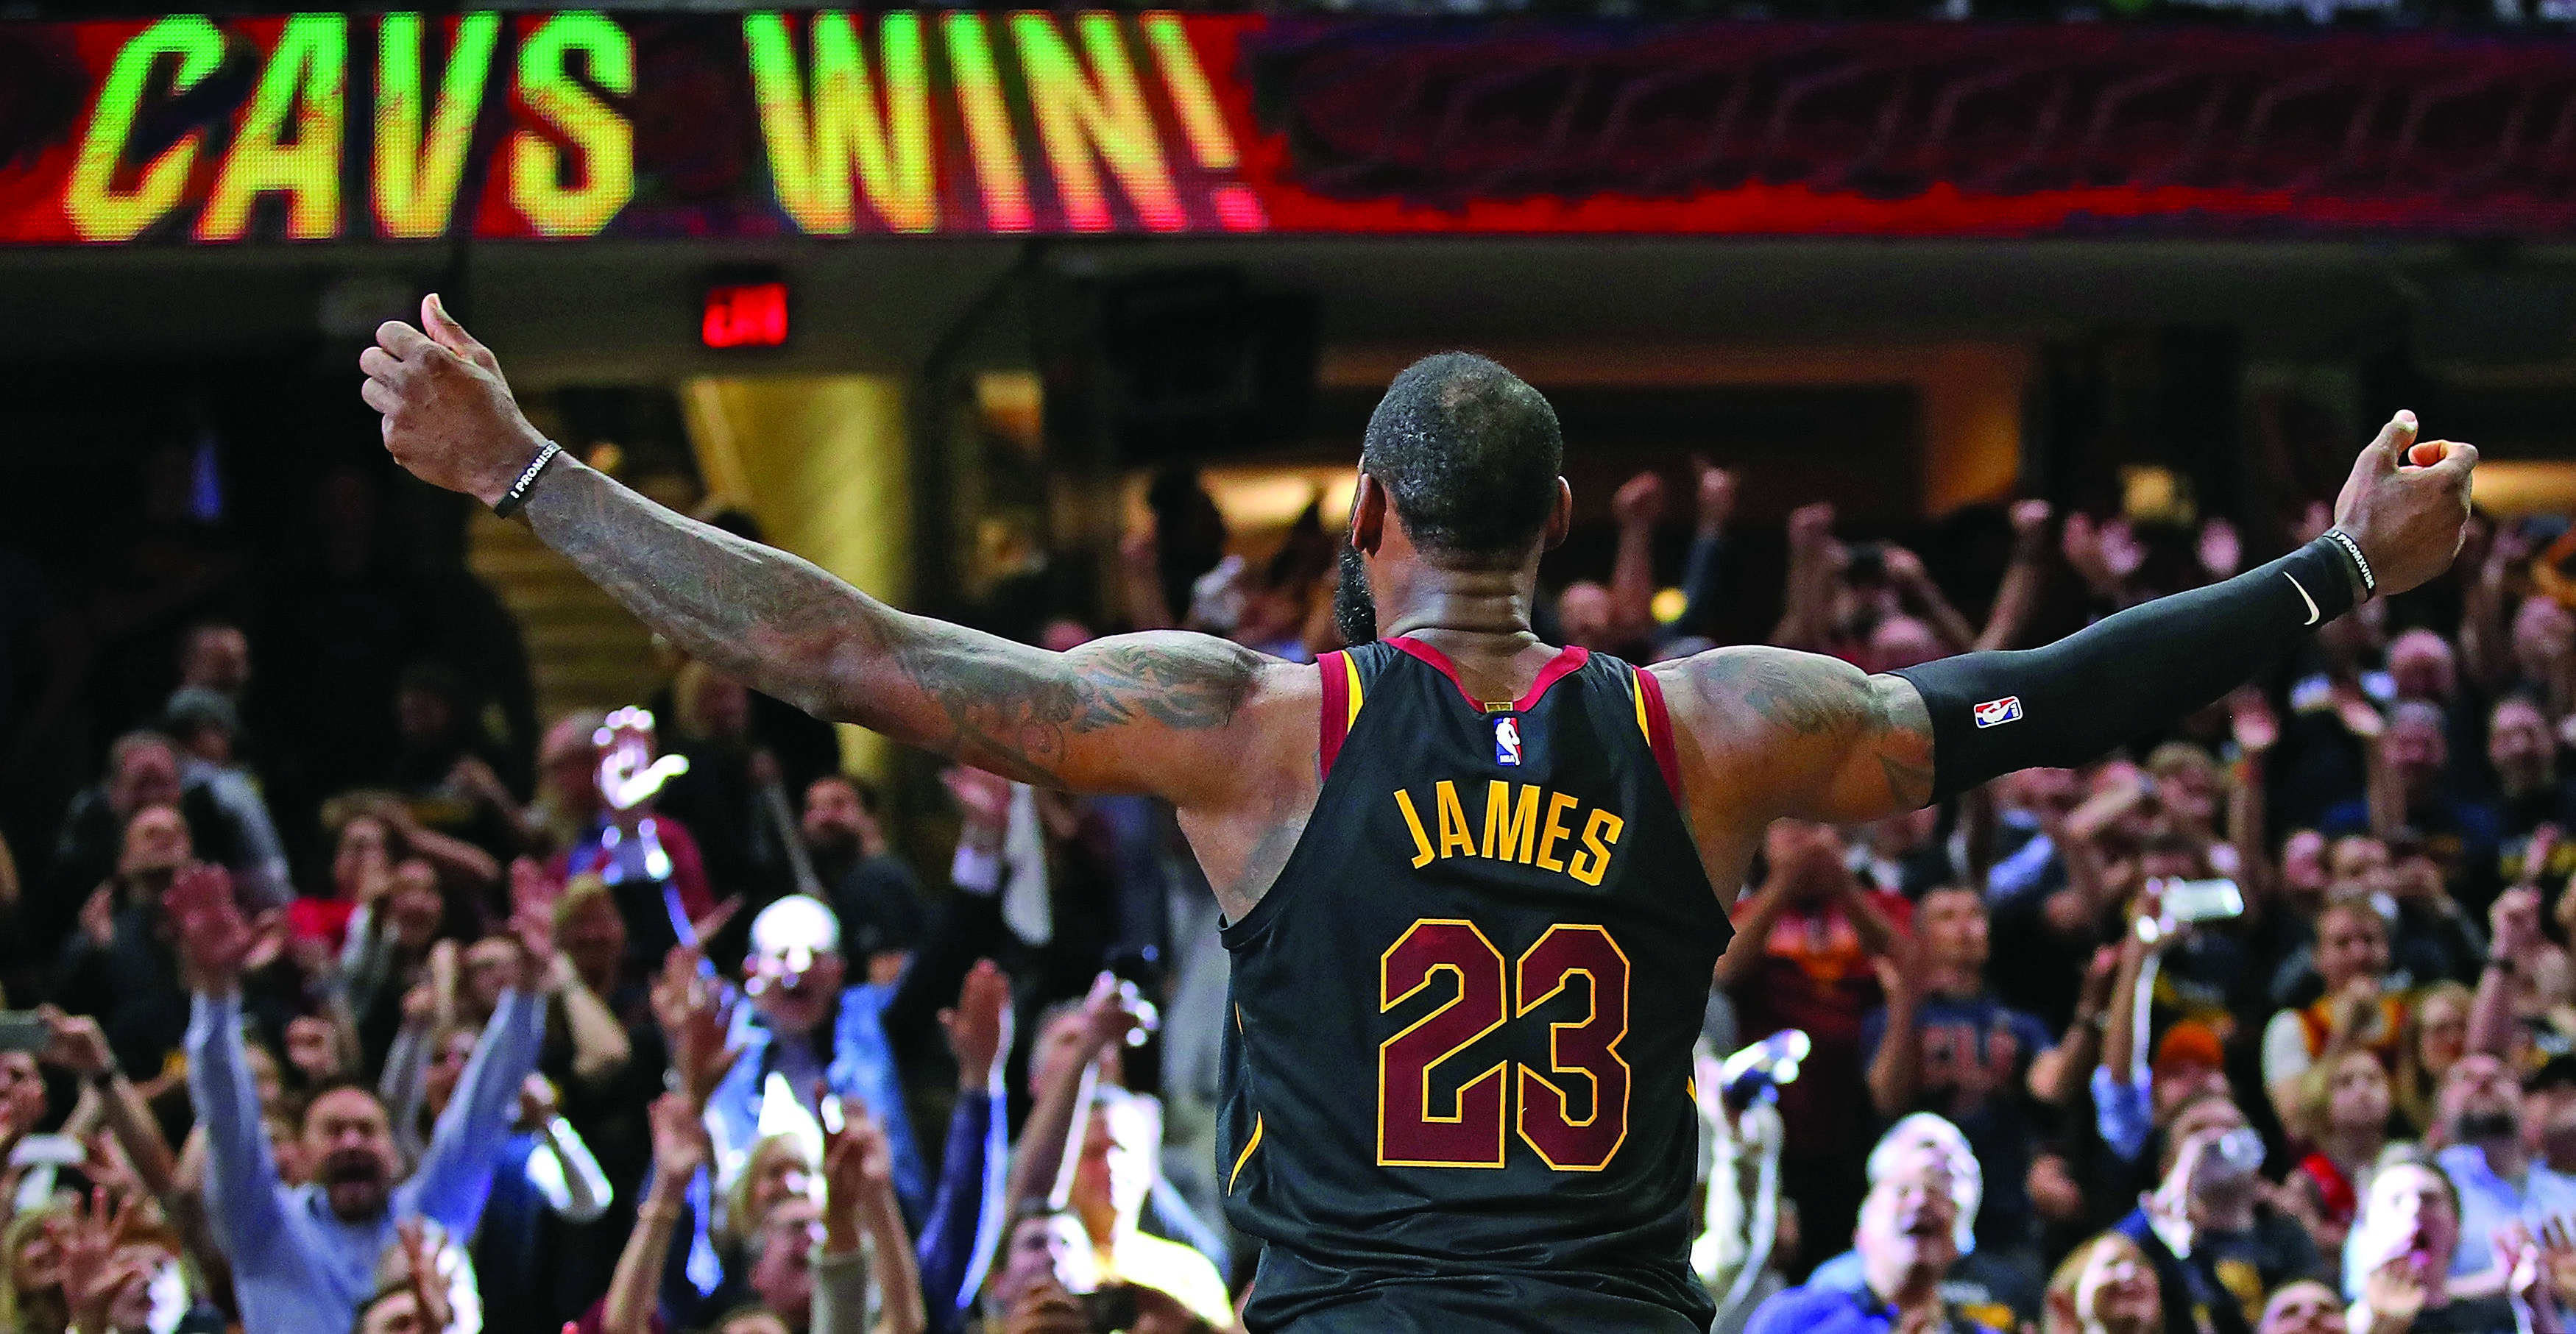 96ef6db98e3f LeBron James celebrates after hitting the game-winning shot to beat the  Toronto Raptors in Game 3 of the Eastern Conference semifinals on May 5.